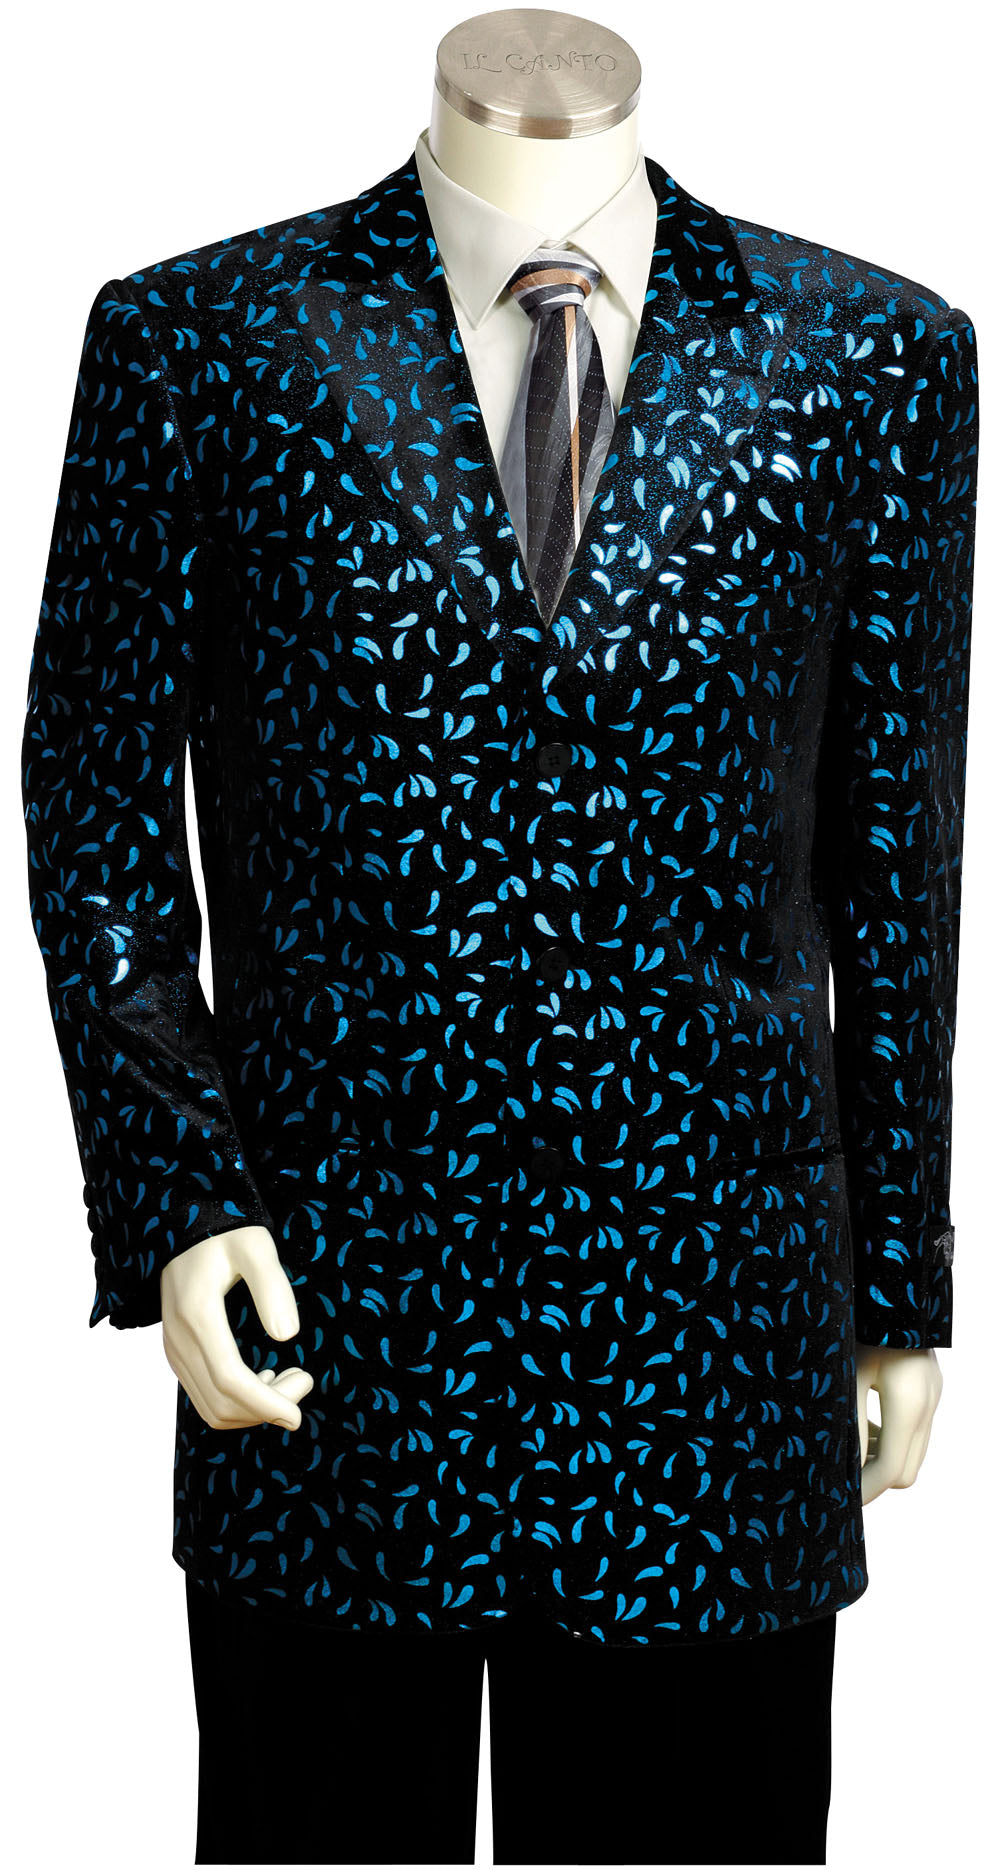 Disco Teardrops Velvet Entertainment 2pc Zoot Suit Set - Turquoise